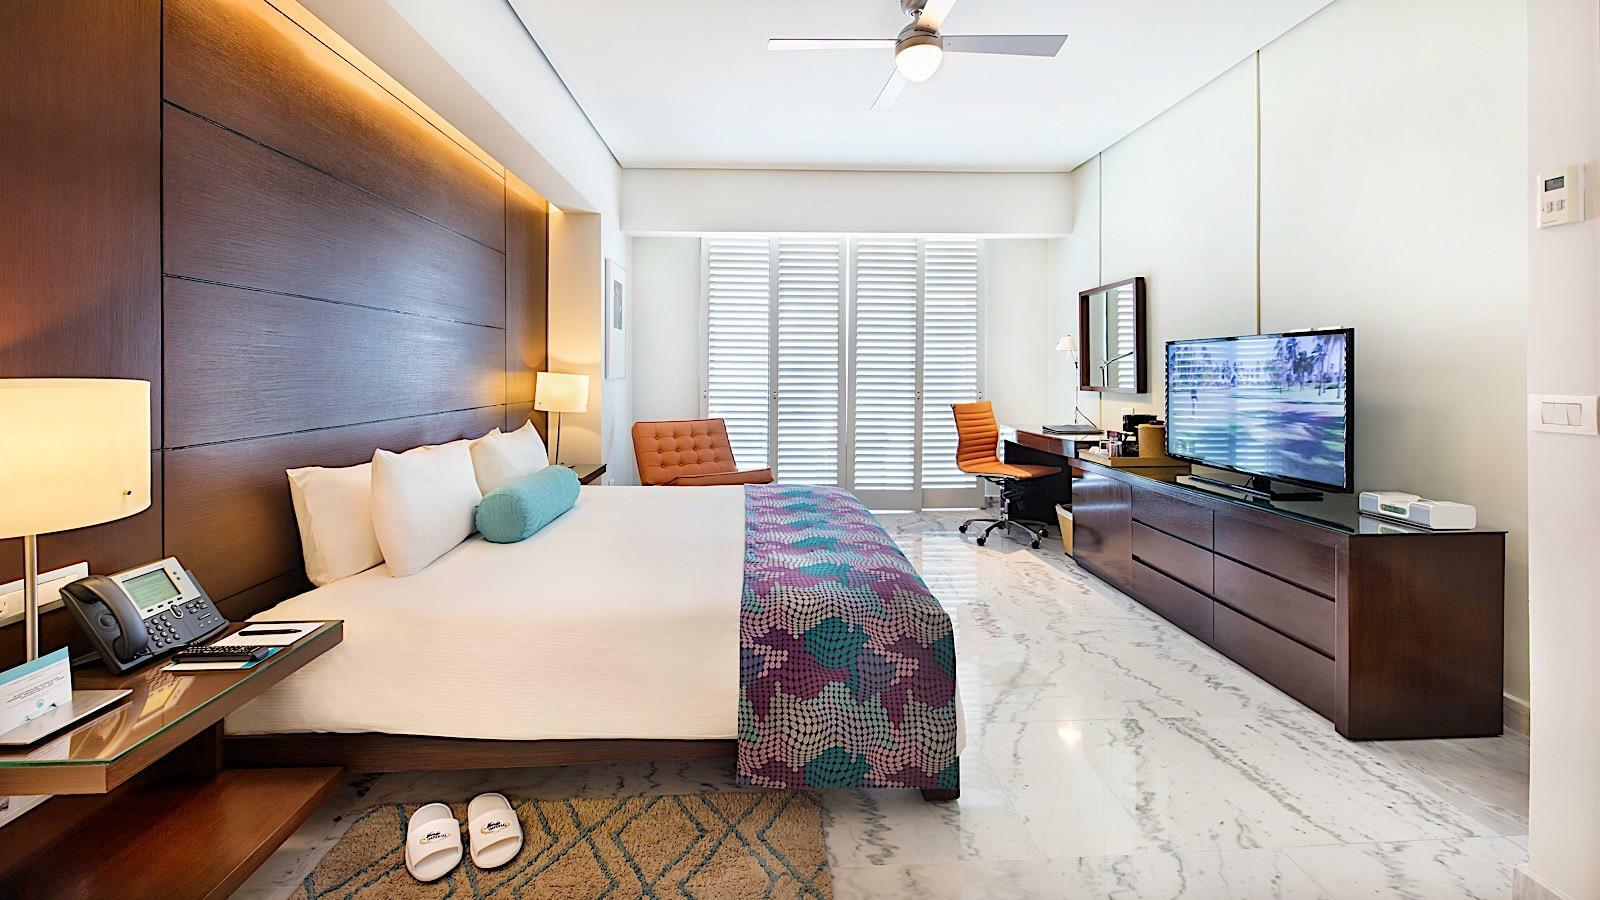 Club 89 King Size Bed Resort View Room with one bed at Mundo Imperial